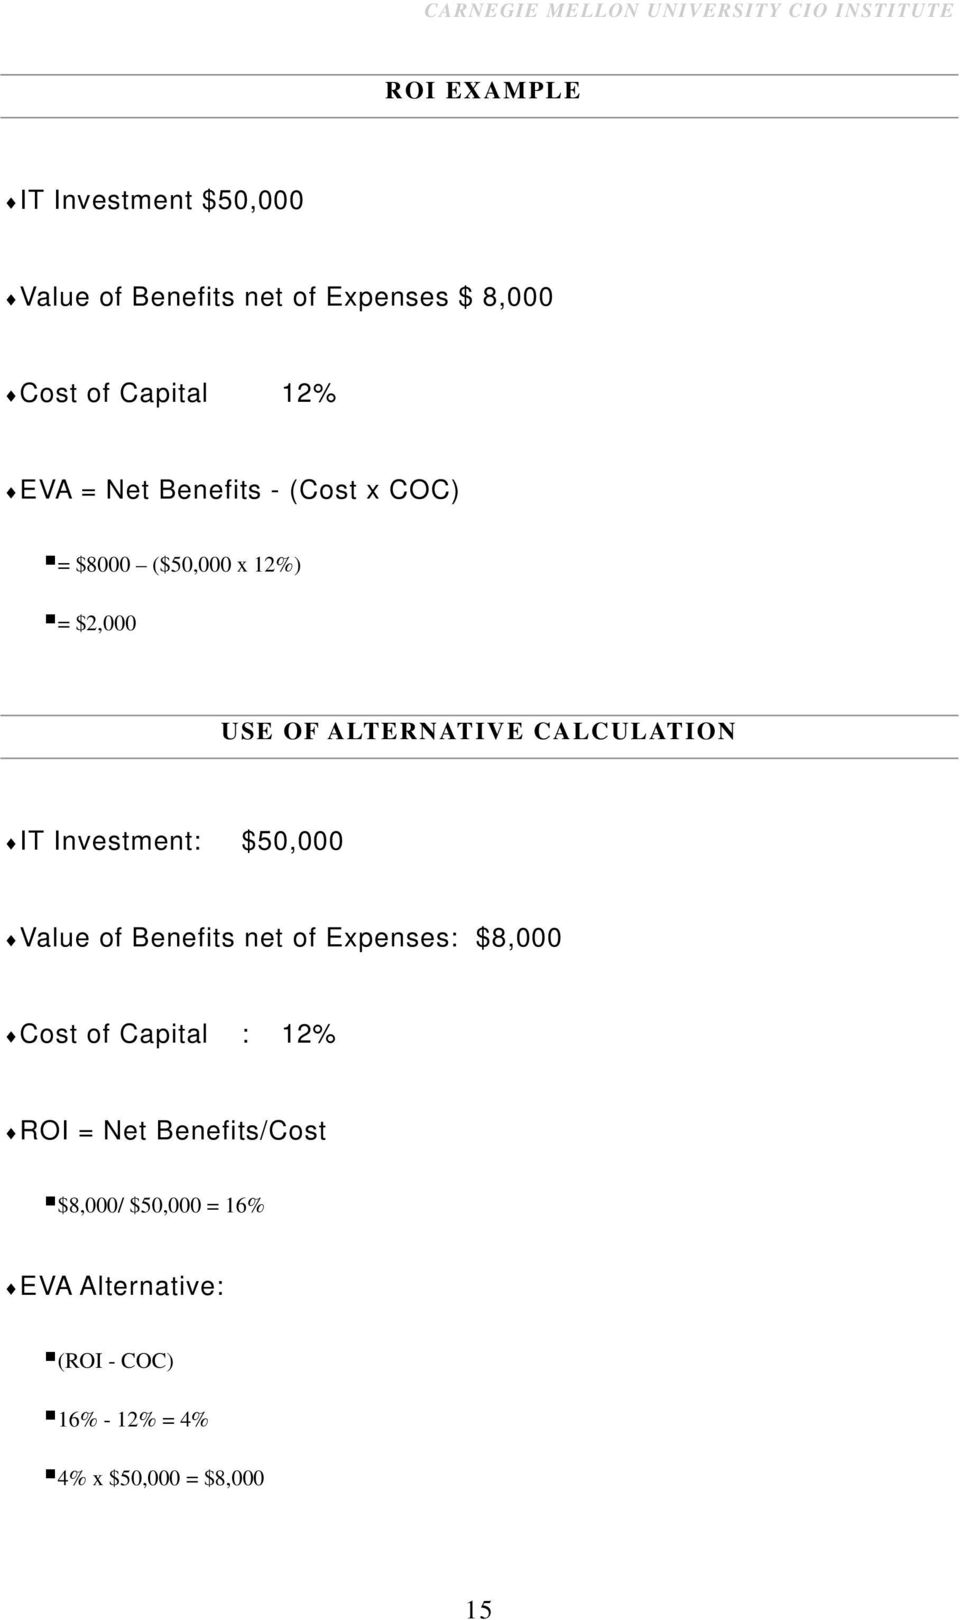 IT Investment: $50,000 Value of Benefits net of Expenses: $8,000 Cost of Capital : 12% ROI = Net